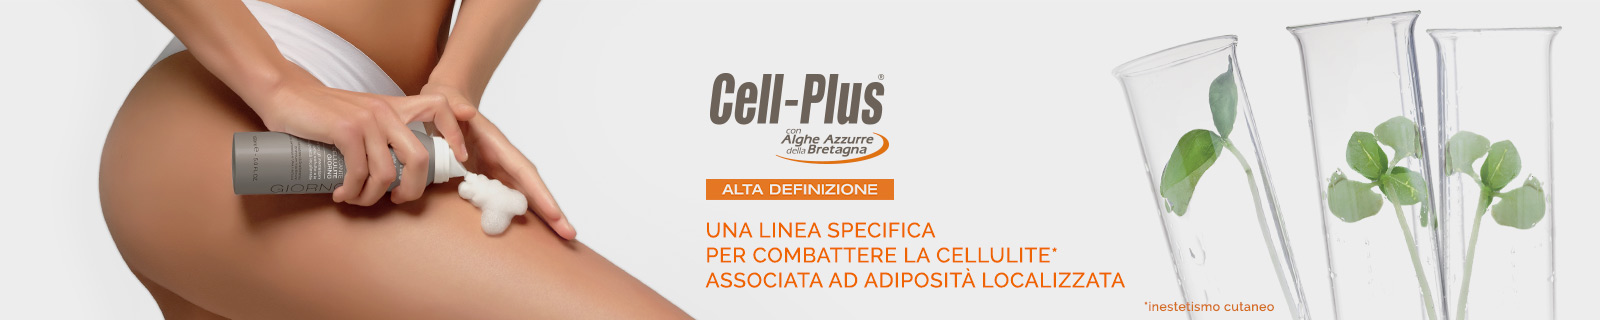 Cell-Plus Mousse Croccante Anti-Cellulite Corpo